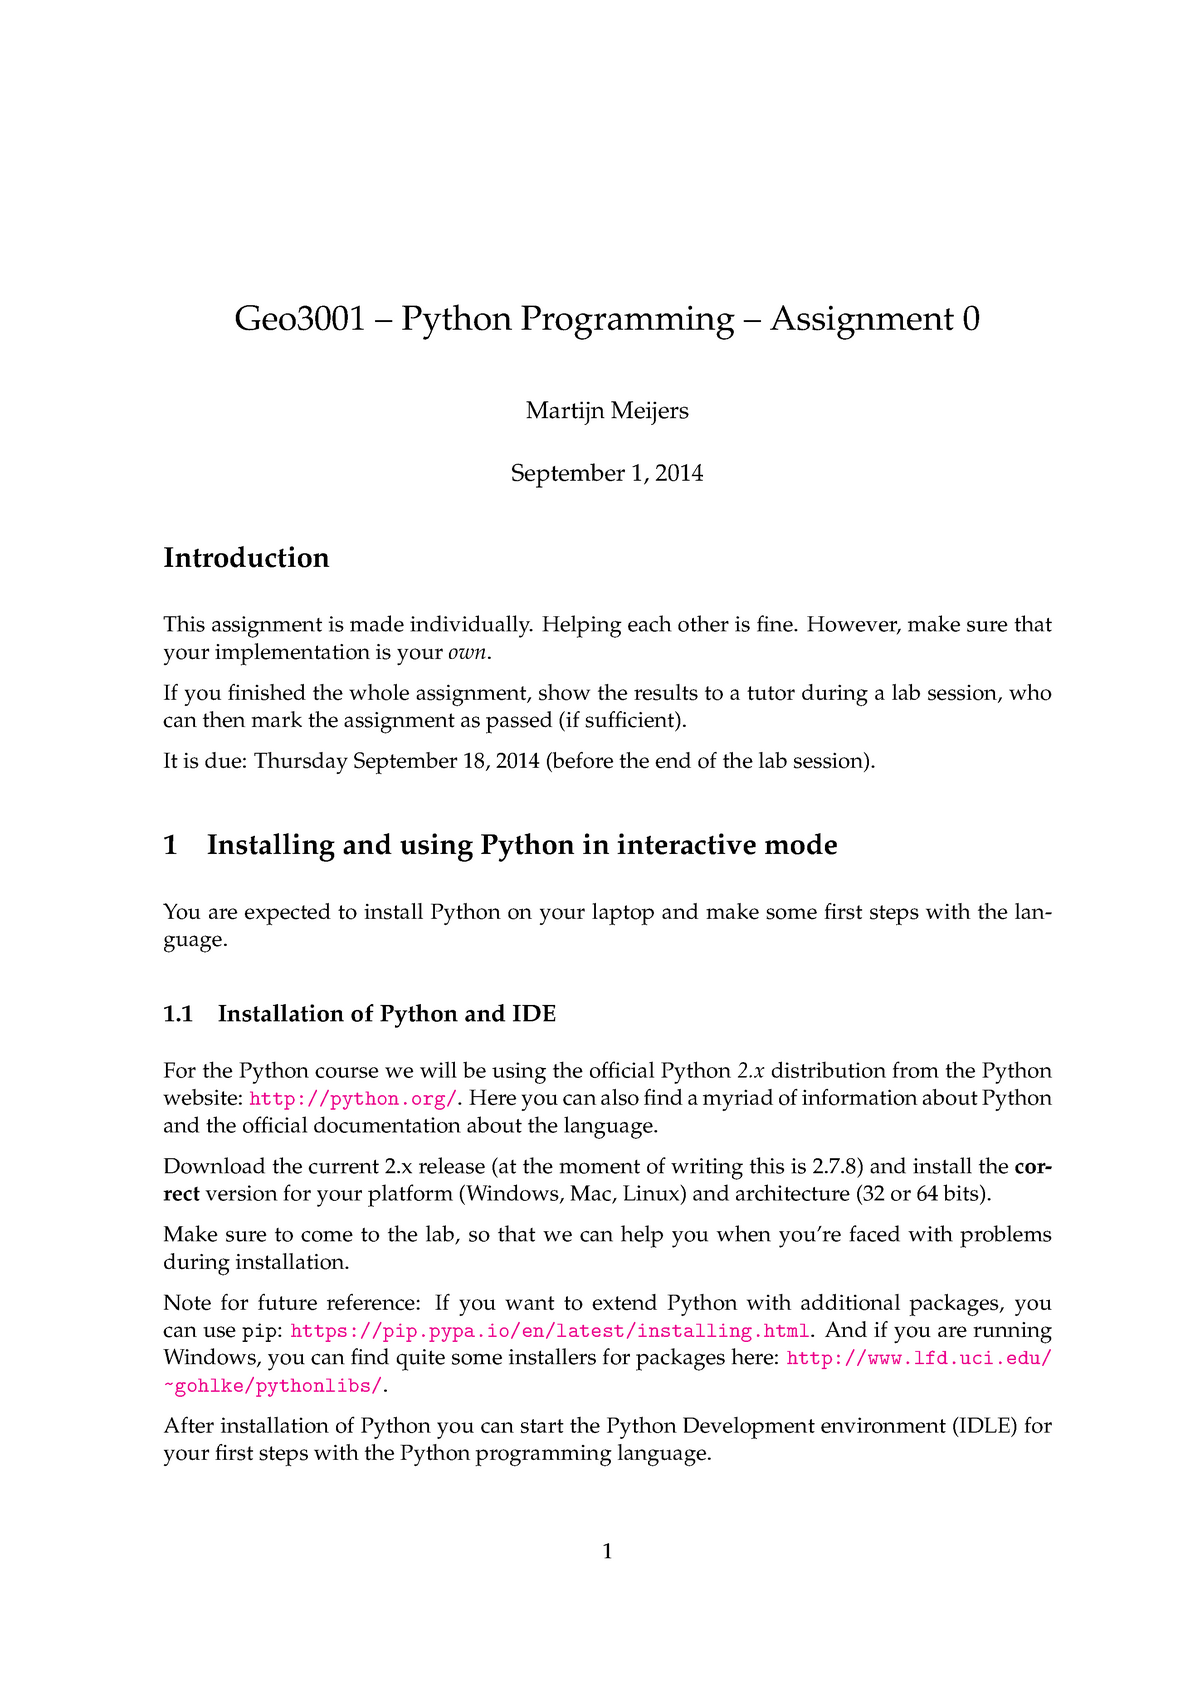 Python Programming for Geomatics - Assignments - assignment0